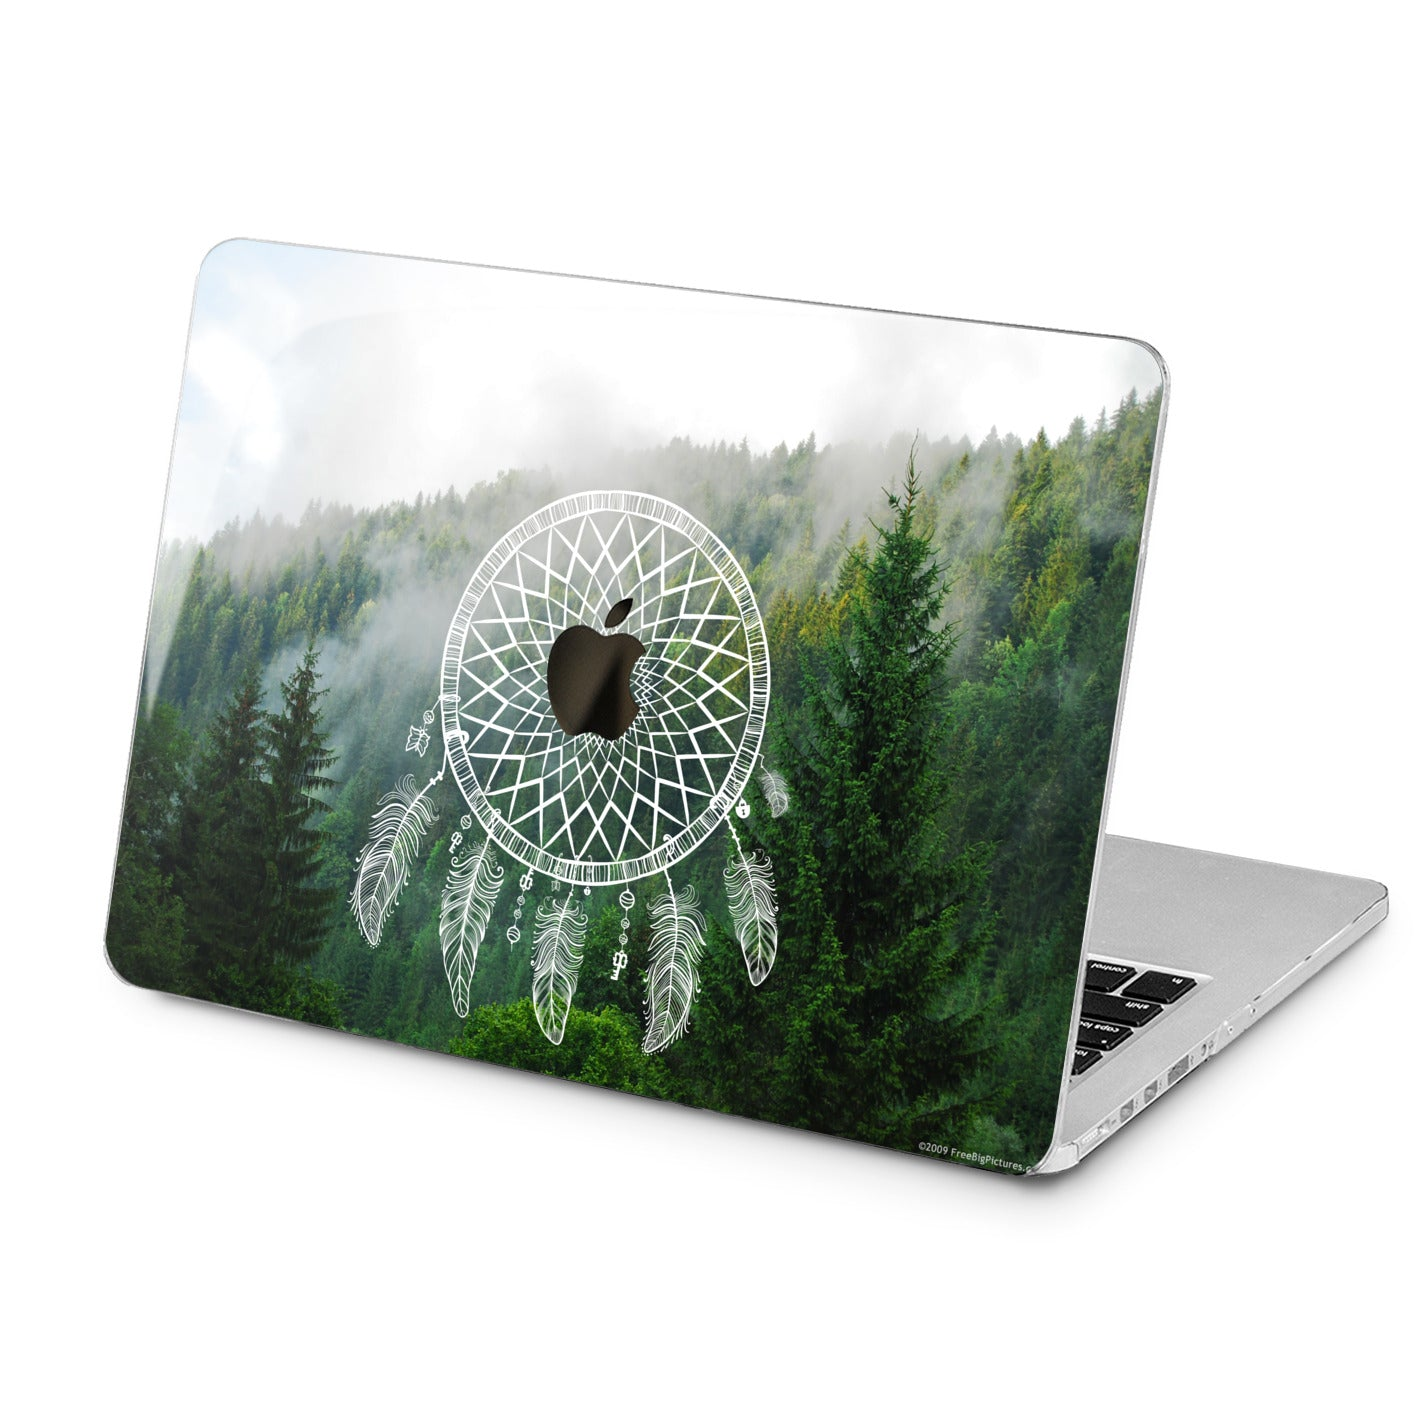 Lex Altern Lex Altern Forest Dreamcatcher Case for your Laptop Apple Macbook.